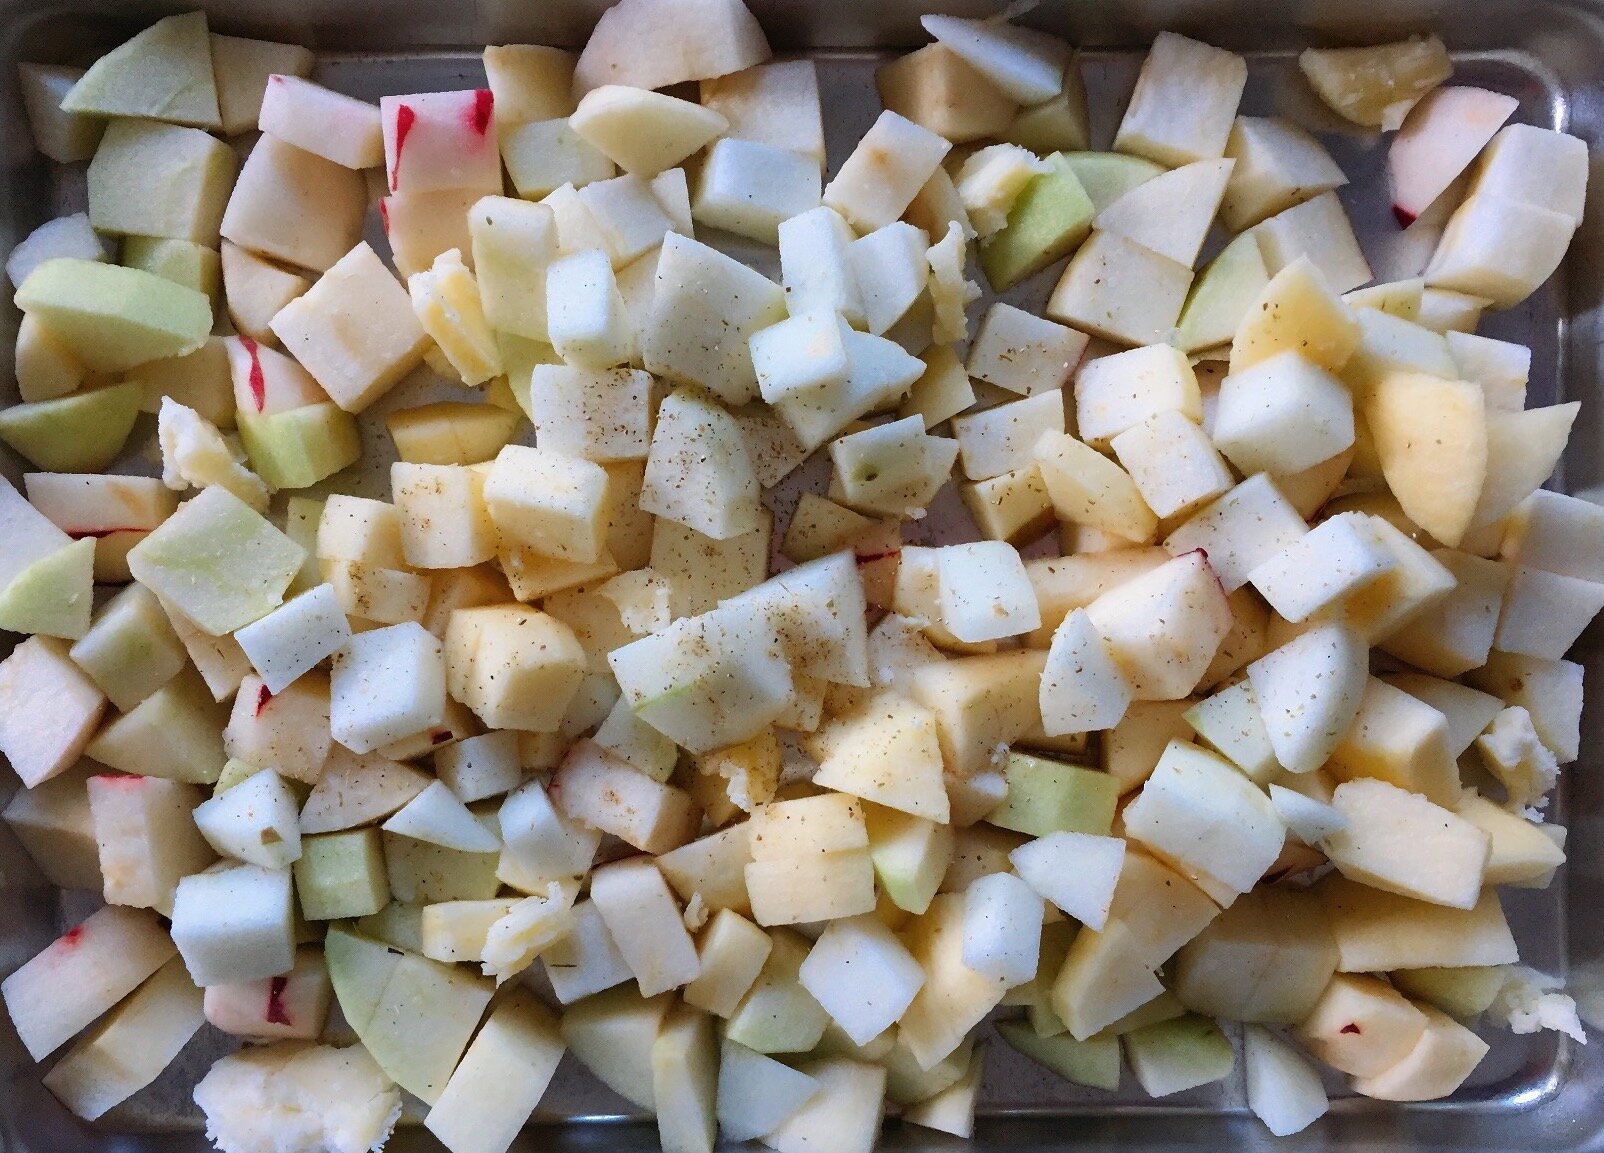 Chunks of apples with a little cardamom sprinkled on top.